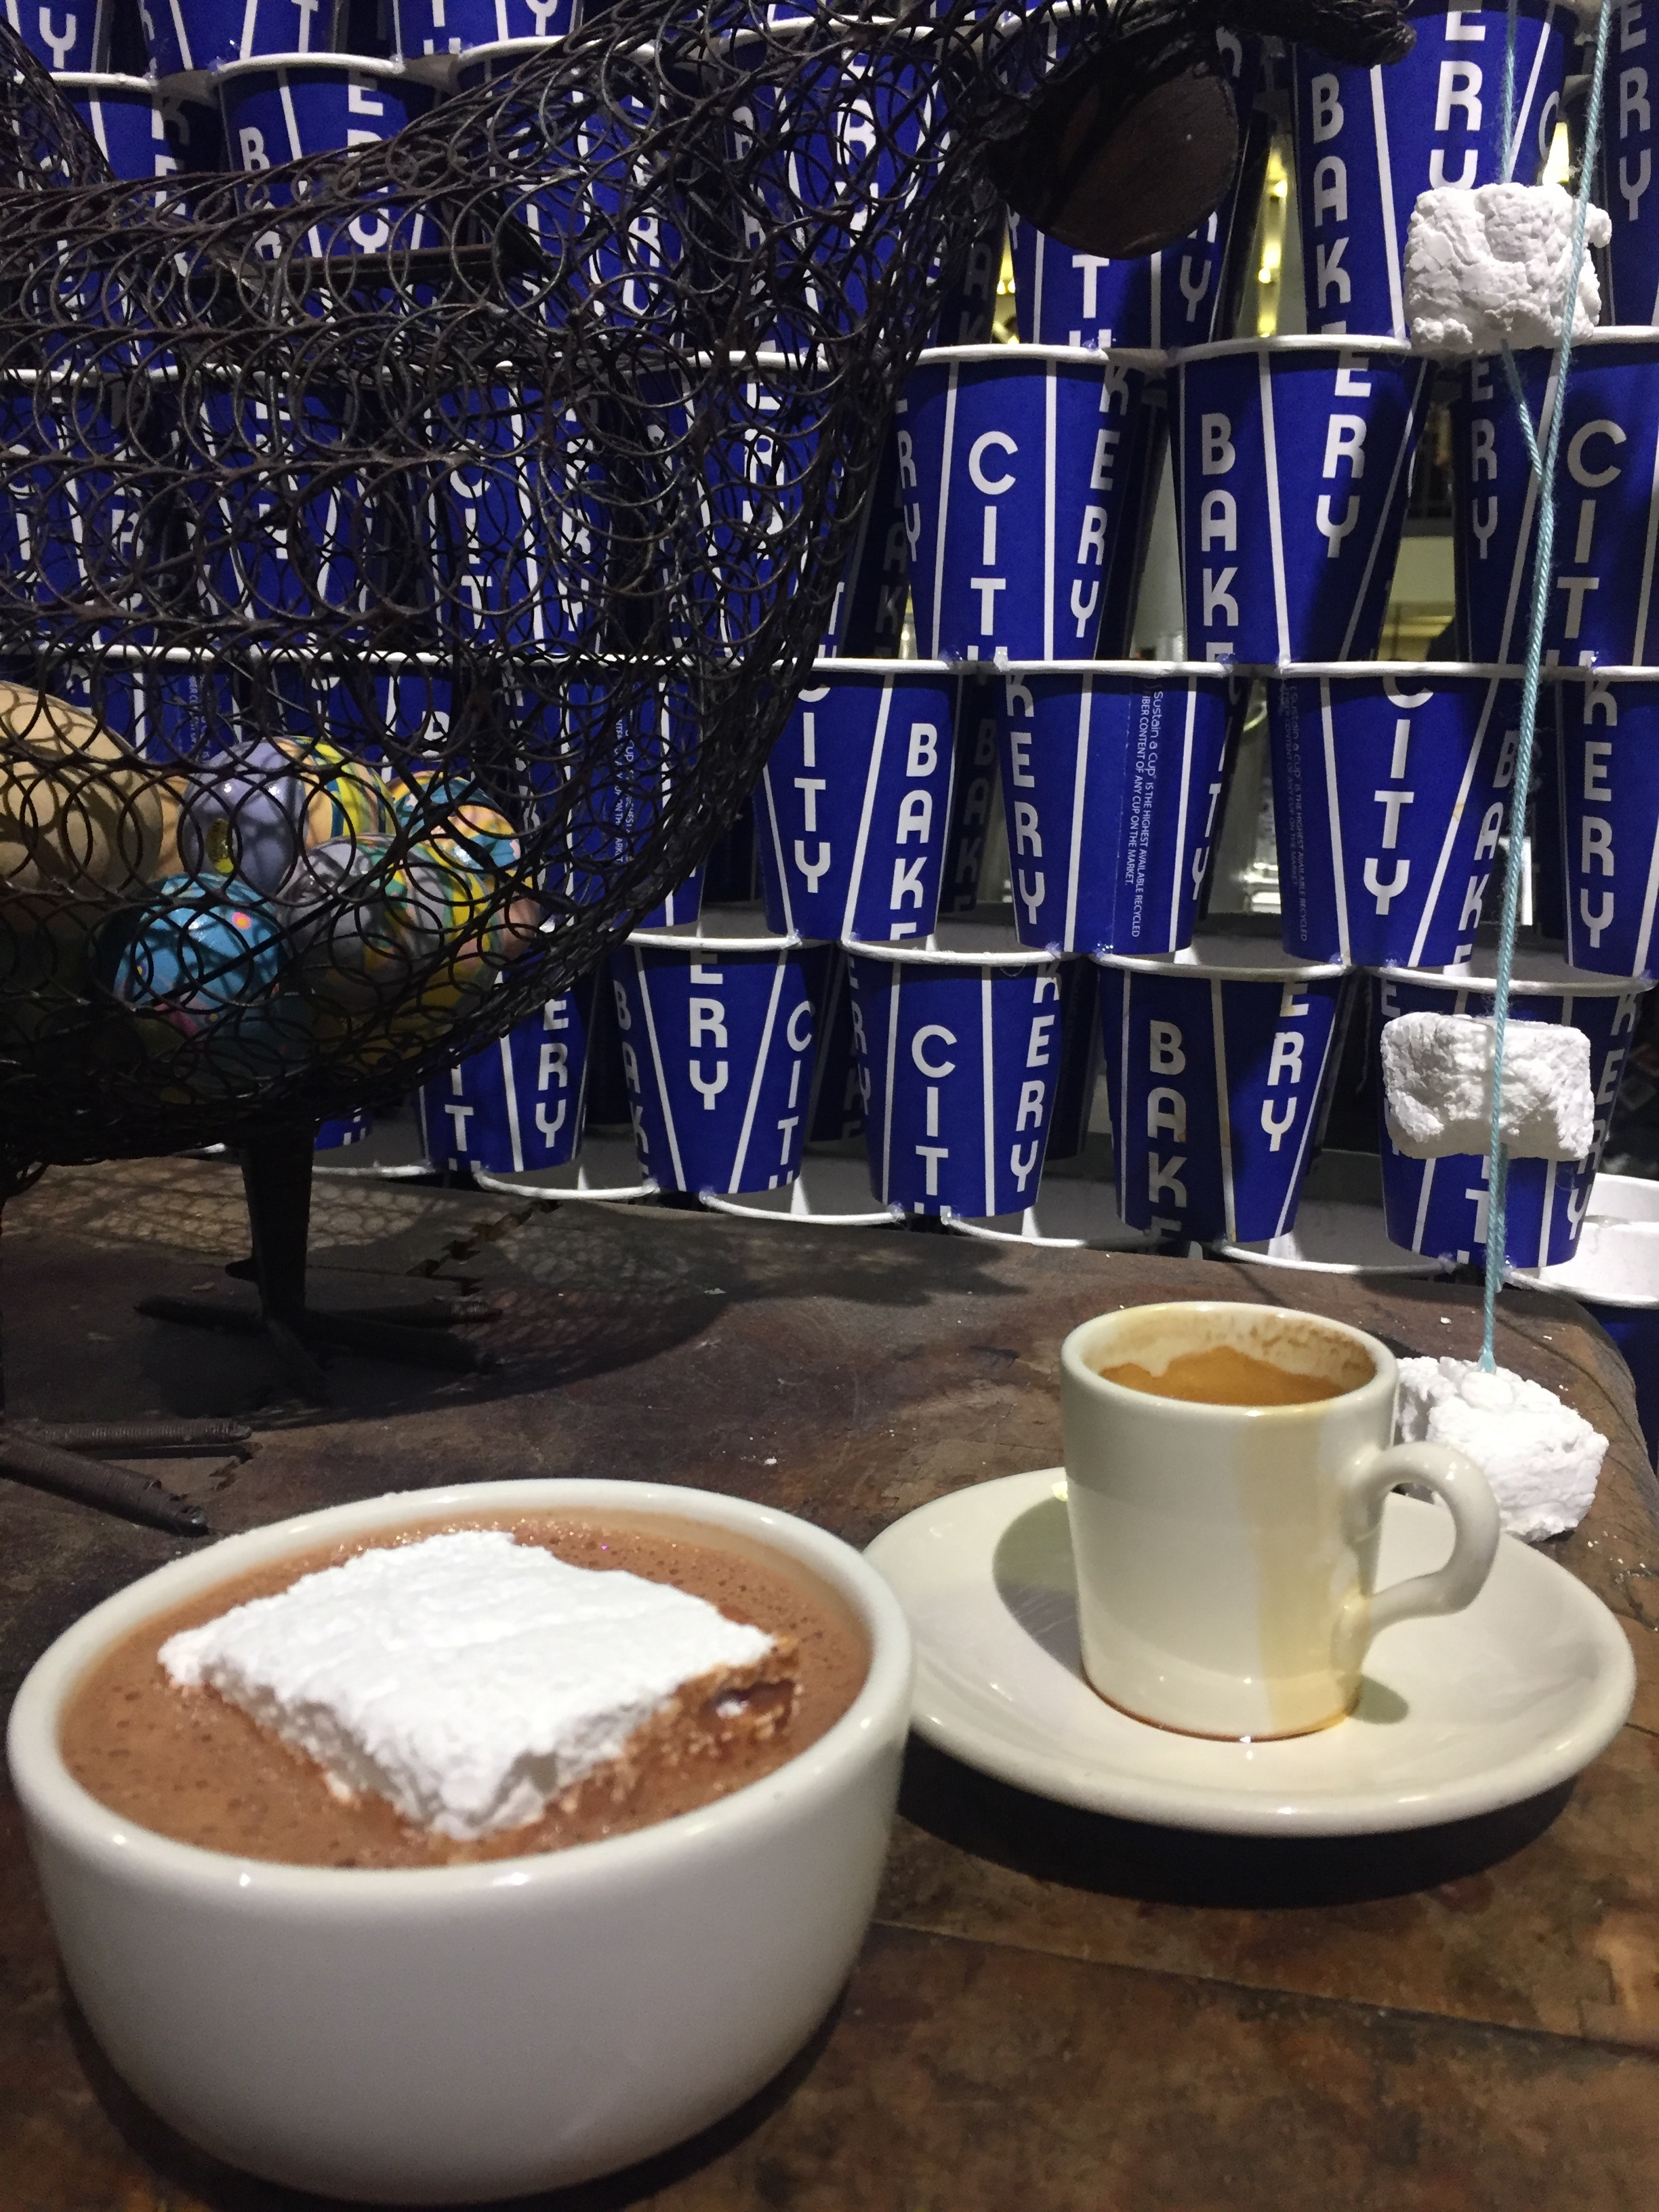 Best hot chocolate is at City Bakery and they offer to-stay mugs.